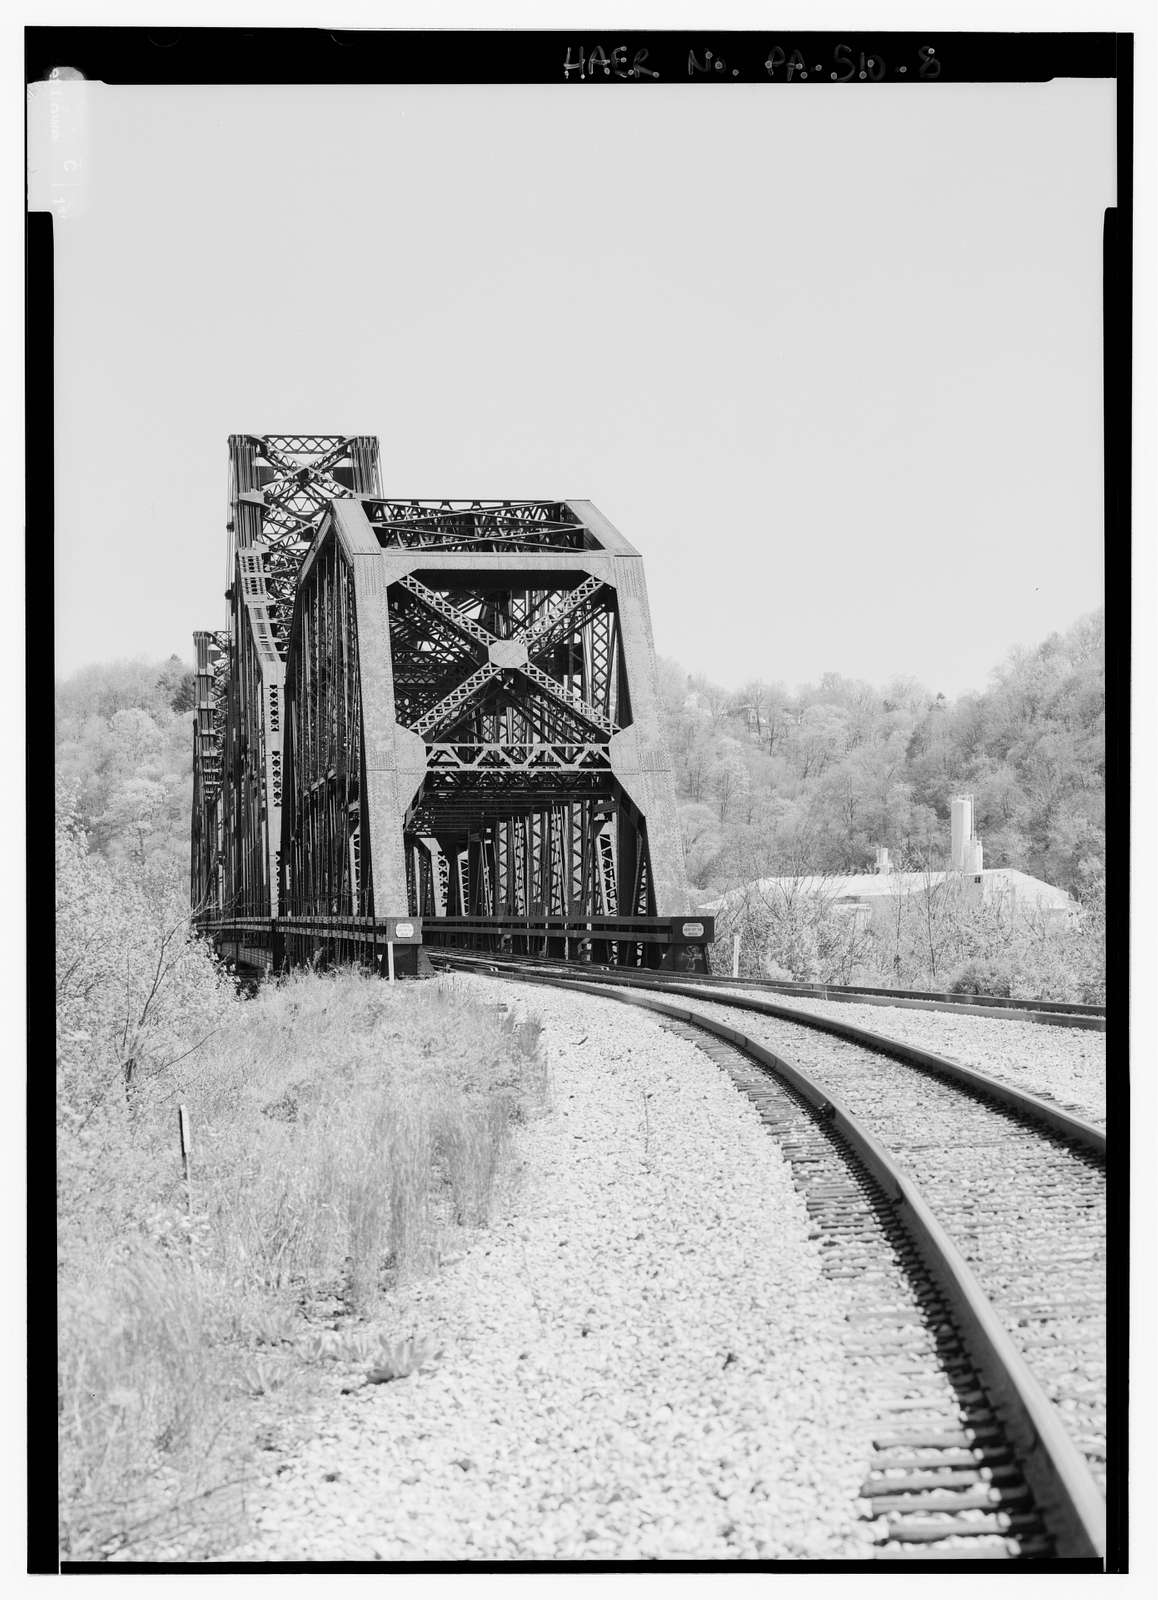 Pittsburgh & Lake Erie Railroad, Ohio River Bridge, Spanning Ohio River, West of Beaver River, Beaver, Beaver County, PA